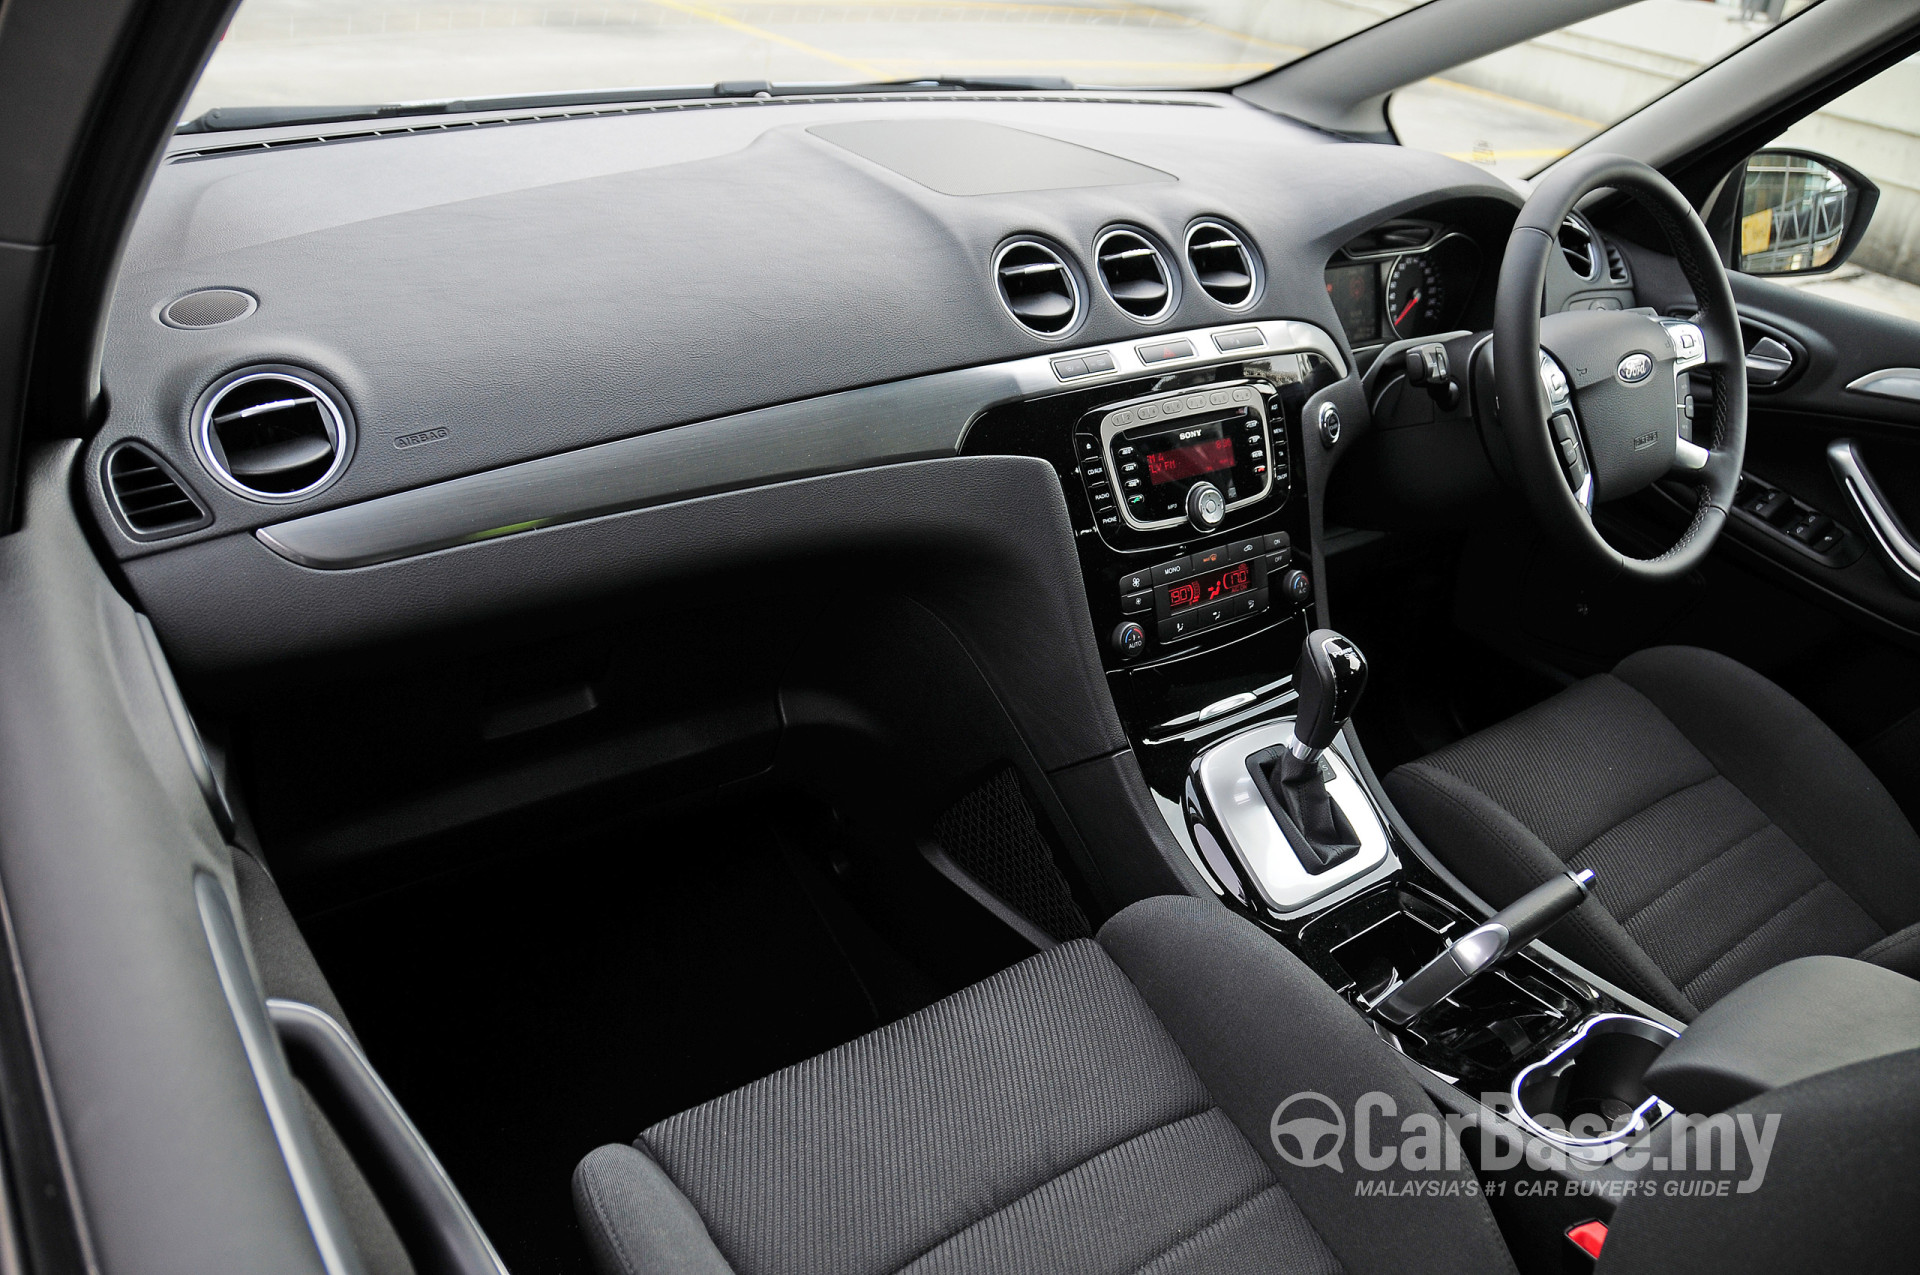 Ford S Max Mk1 Cd340 2011 Interior Image 11263 In Malaysia Reviews Specs Prices